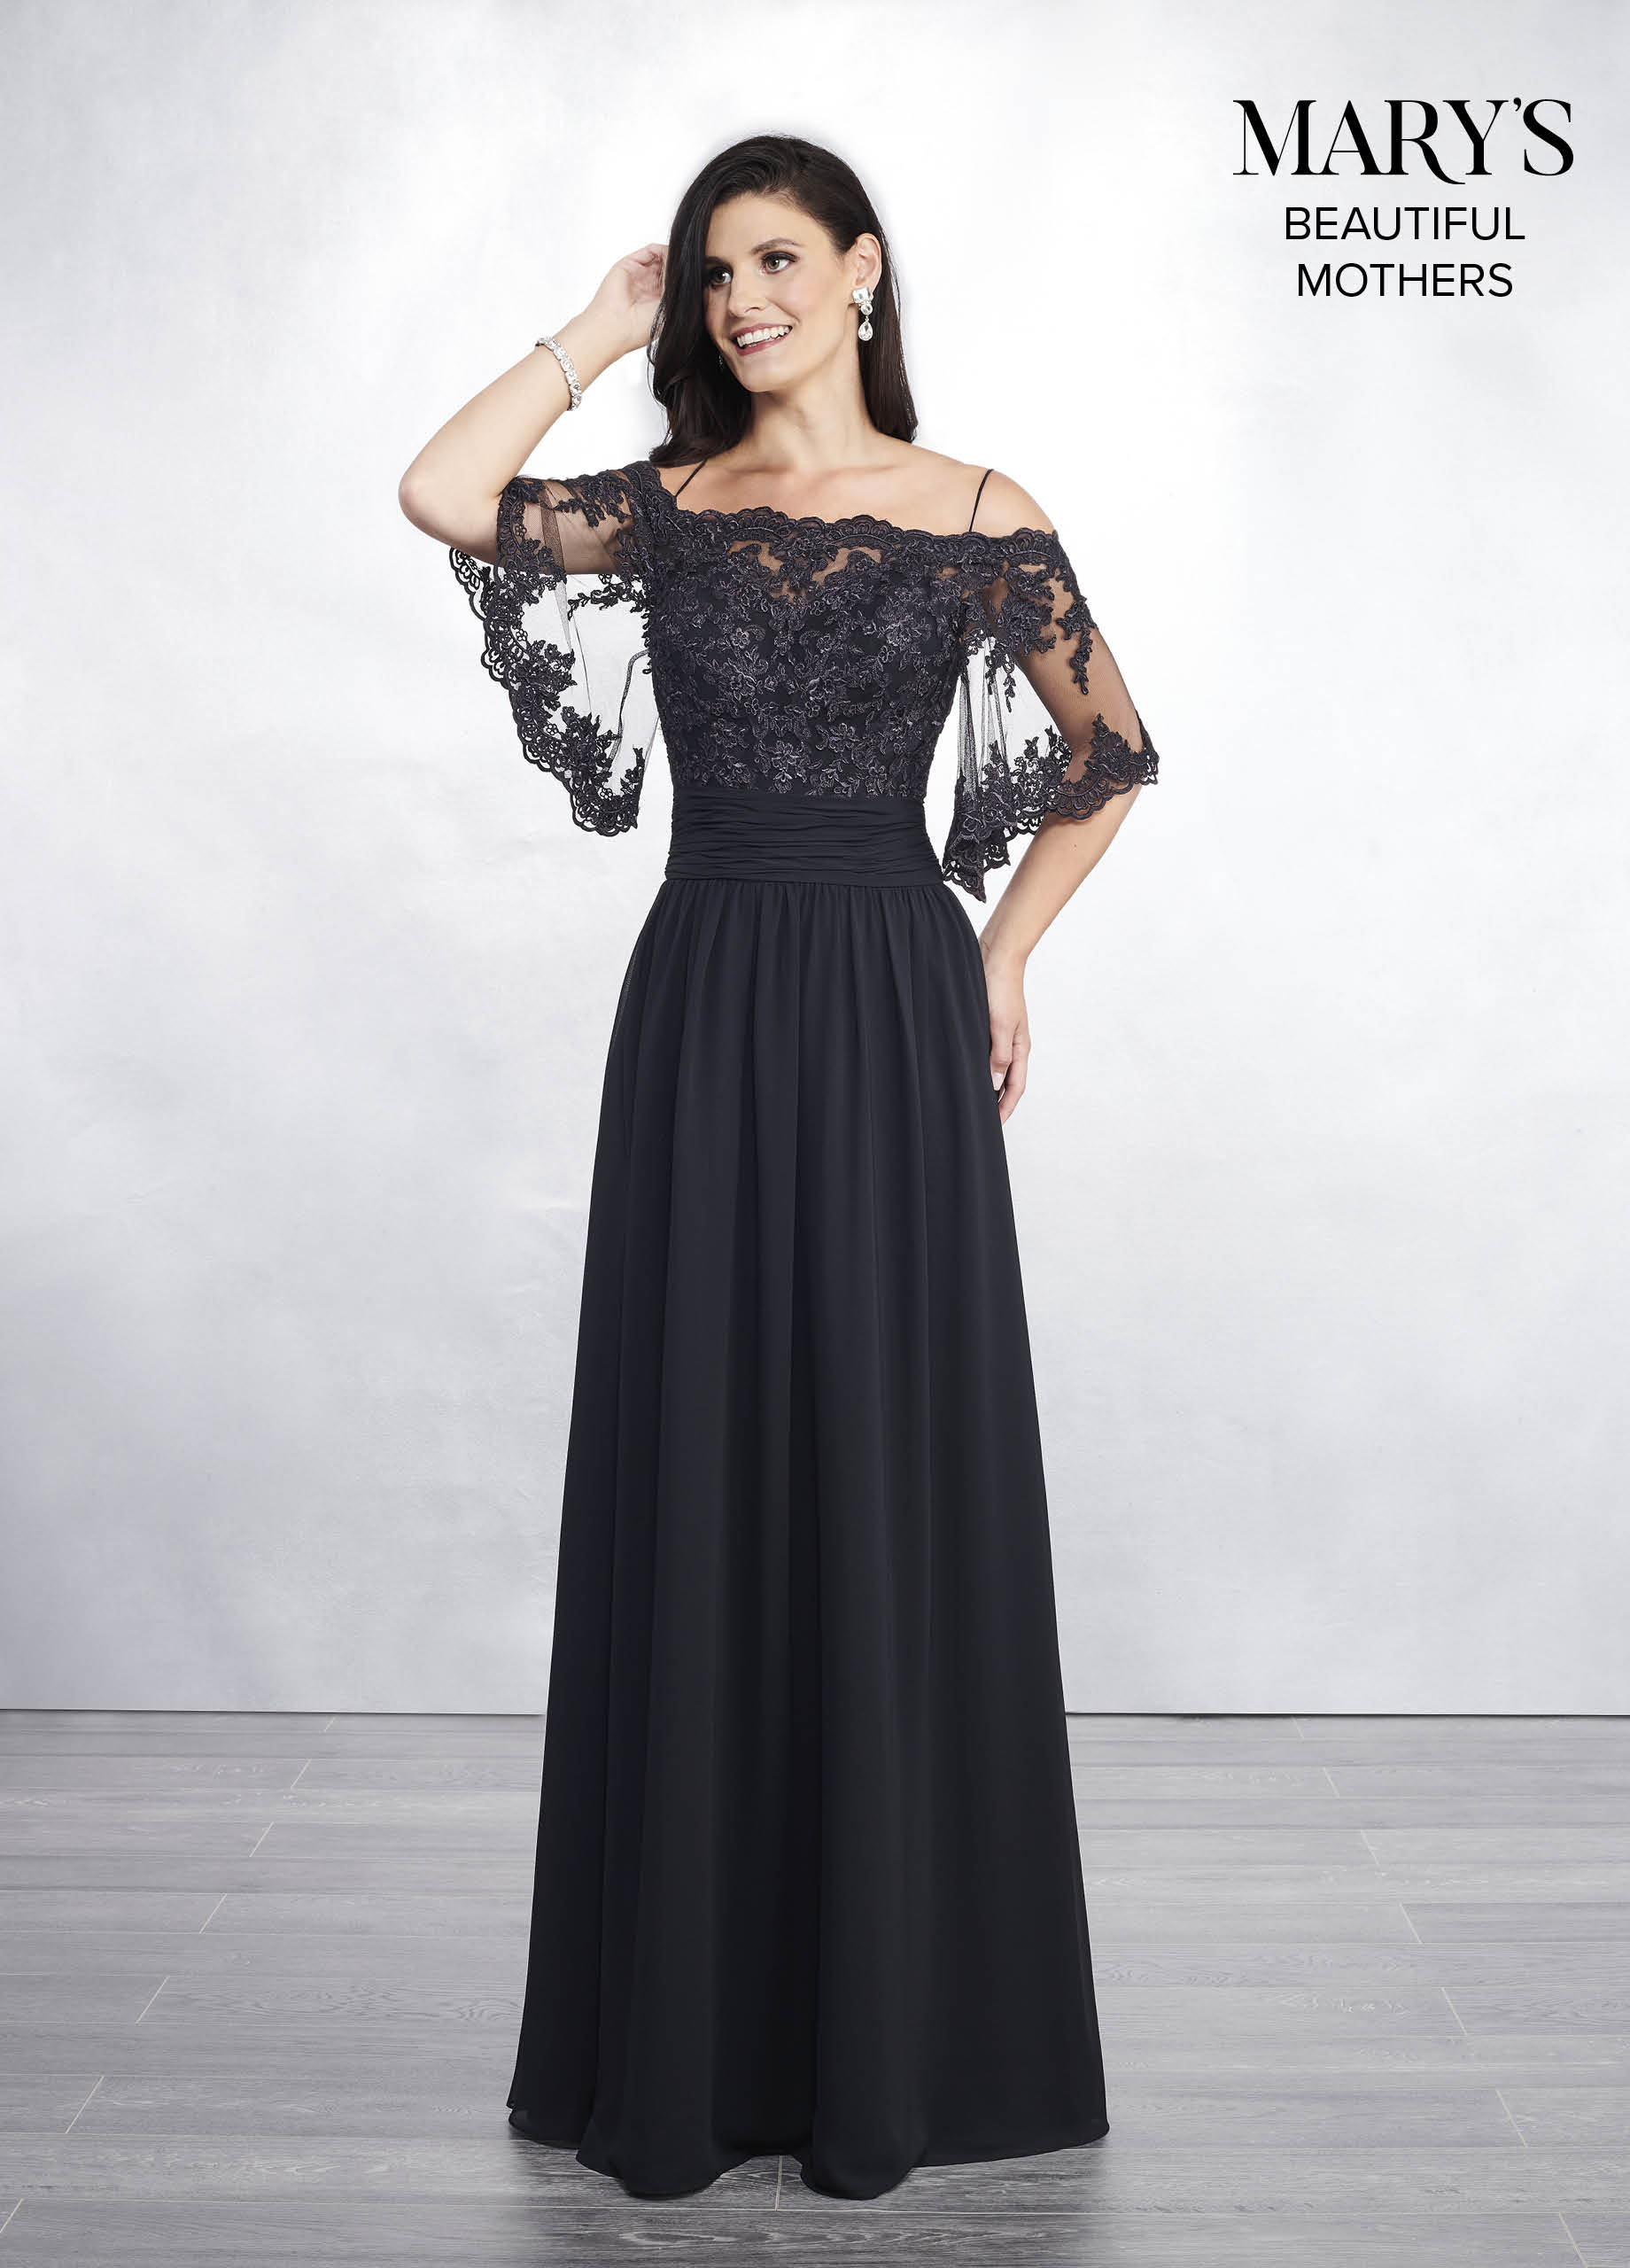 Mother Of The Bride Dresses | Beautiful Mothers | Style - MB8055